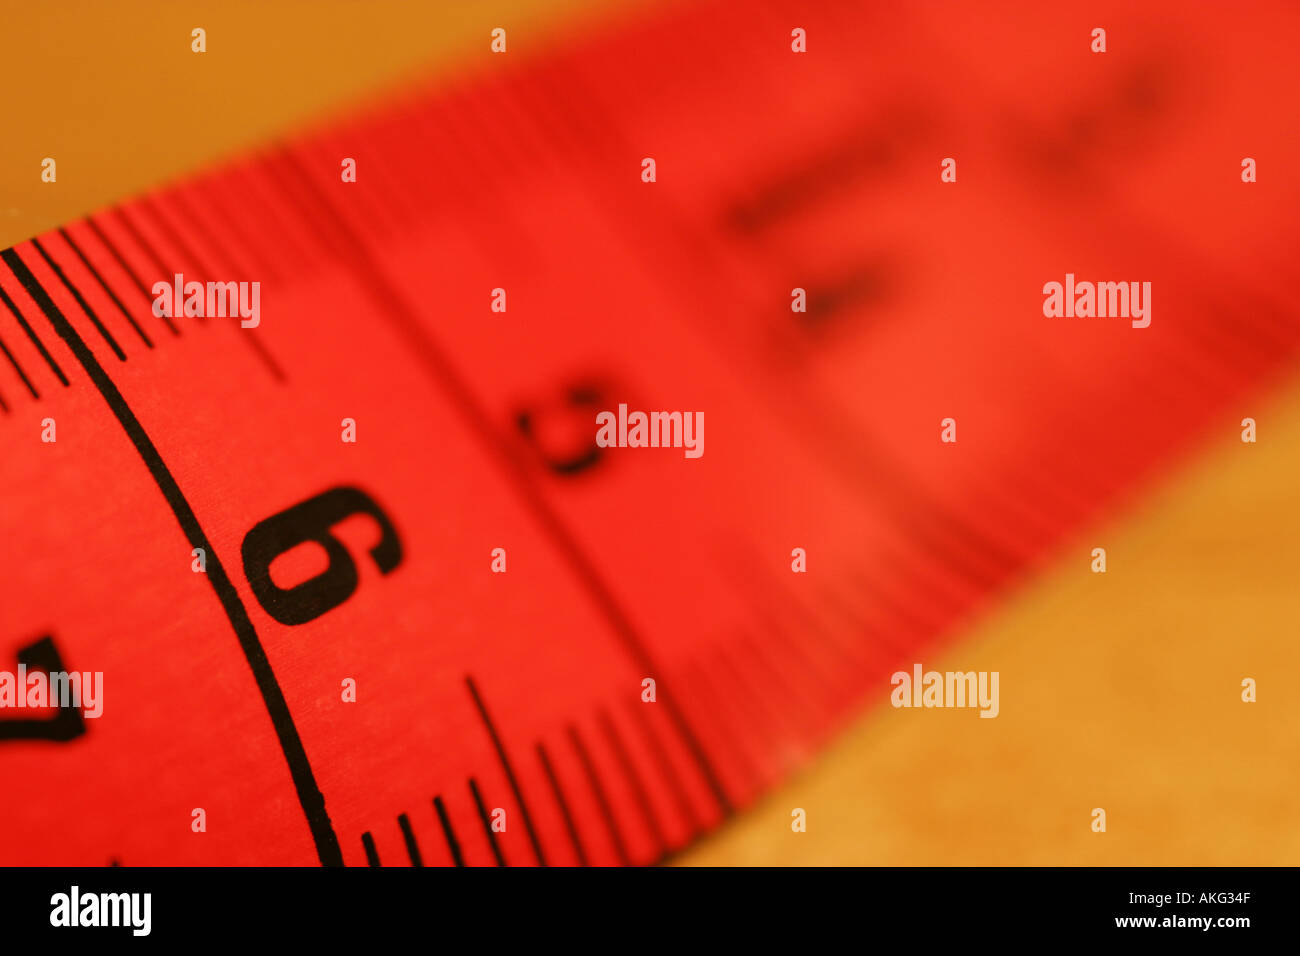 Tape measure close up red colour Stock Photo